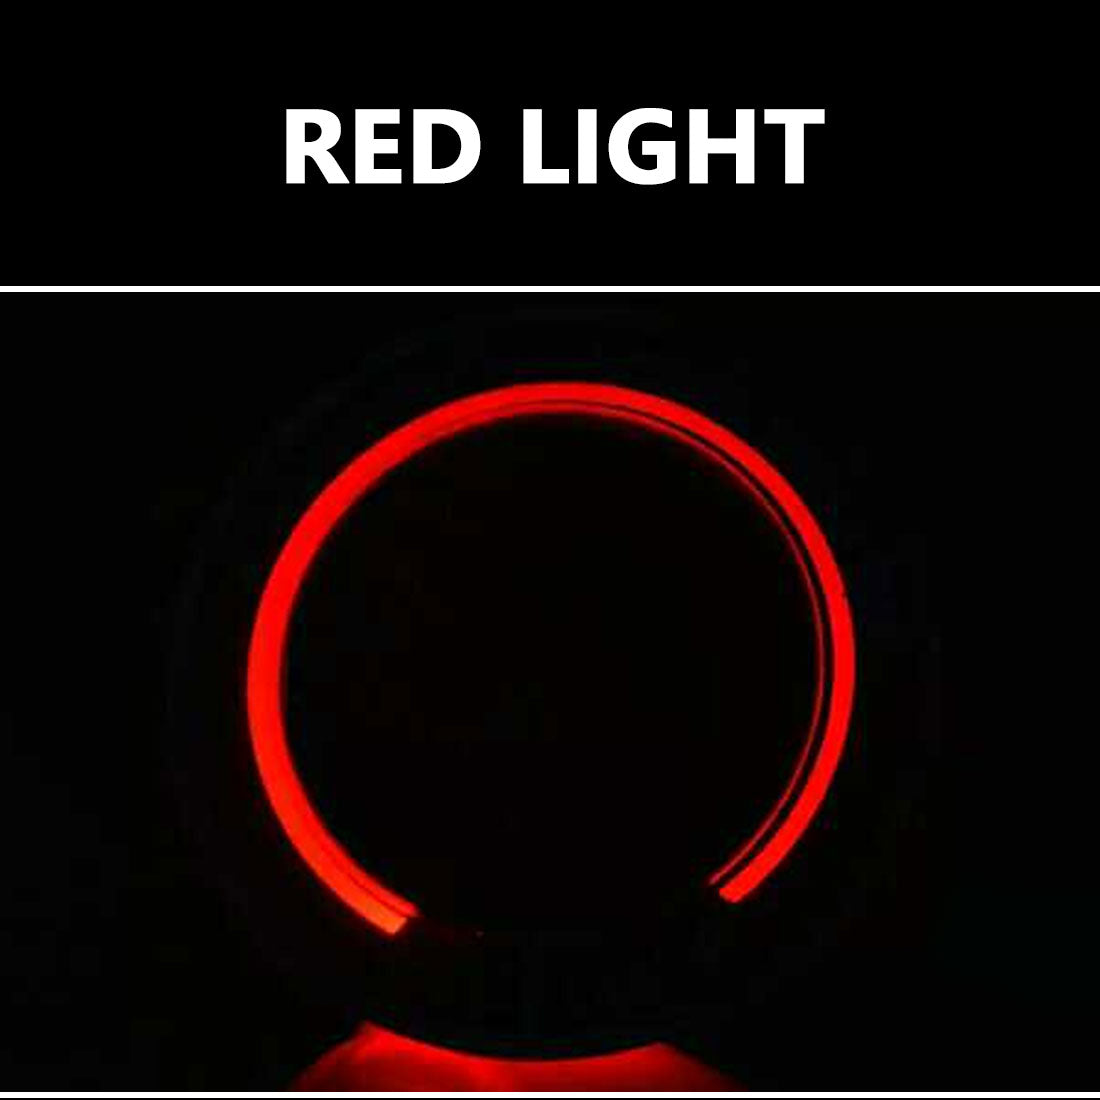 Costbuys  Car ignition key ring led lighting stickers for for auto accessories For Ford Focus 2 Focus 3 Kuga Mondeo - red light